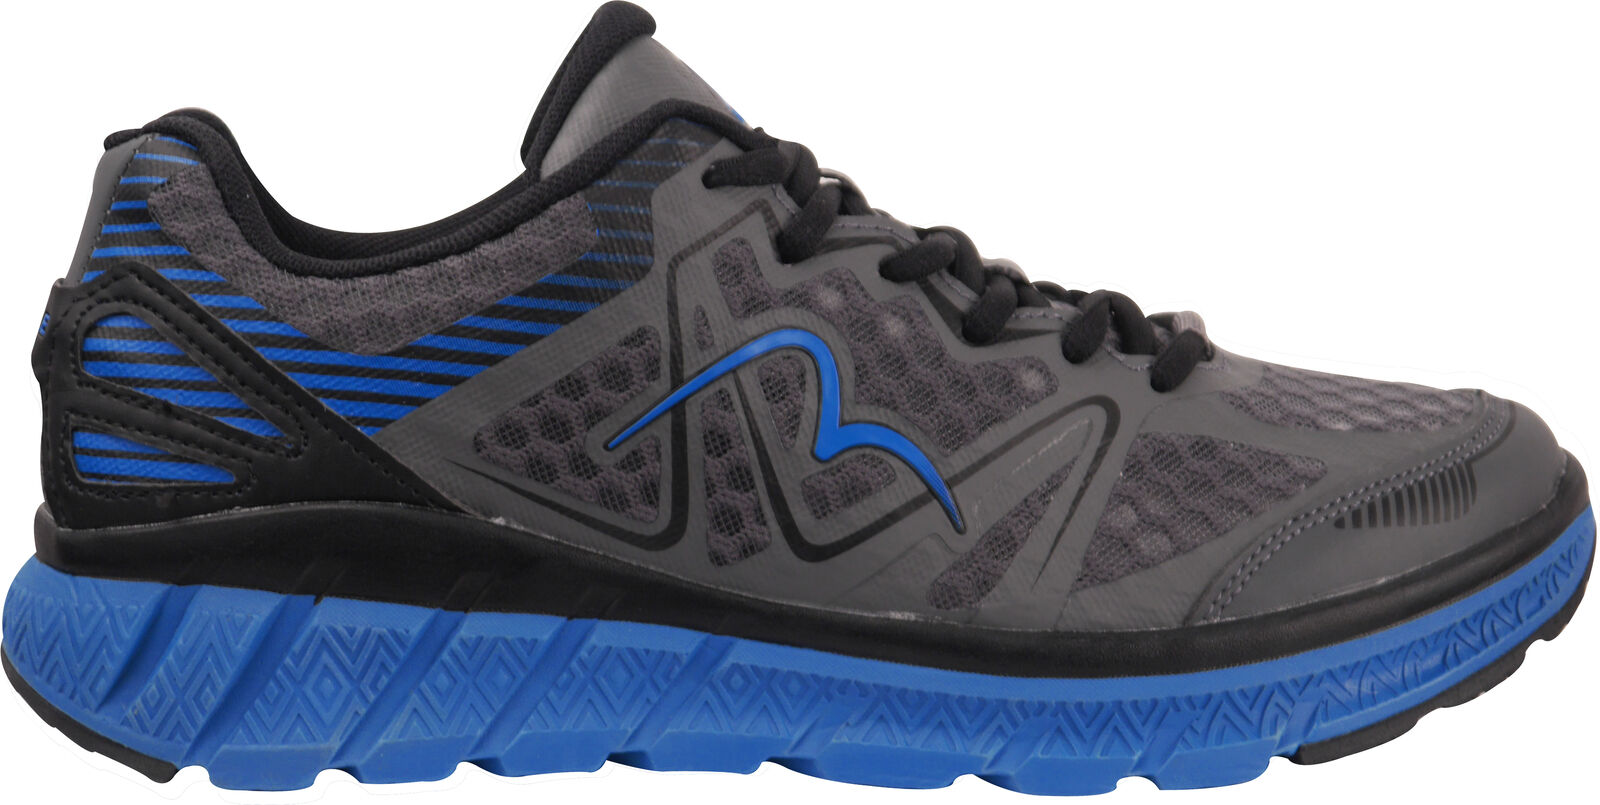 More Mile R66 2 Mens Running shoes Breathable Cushioned Distance Trainers